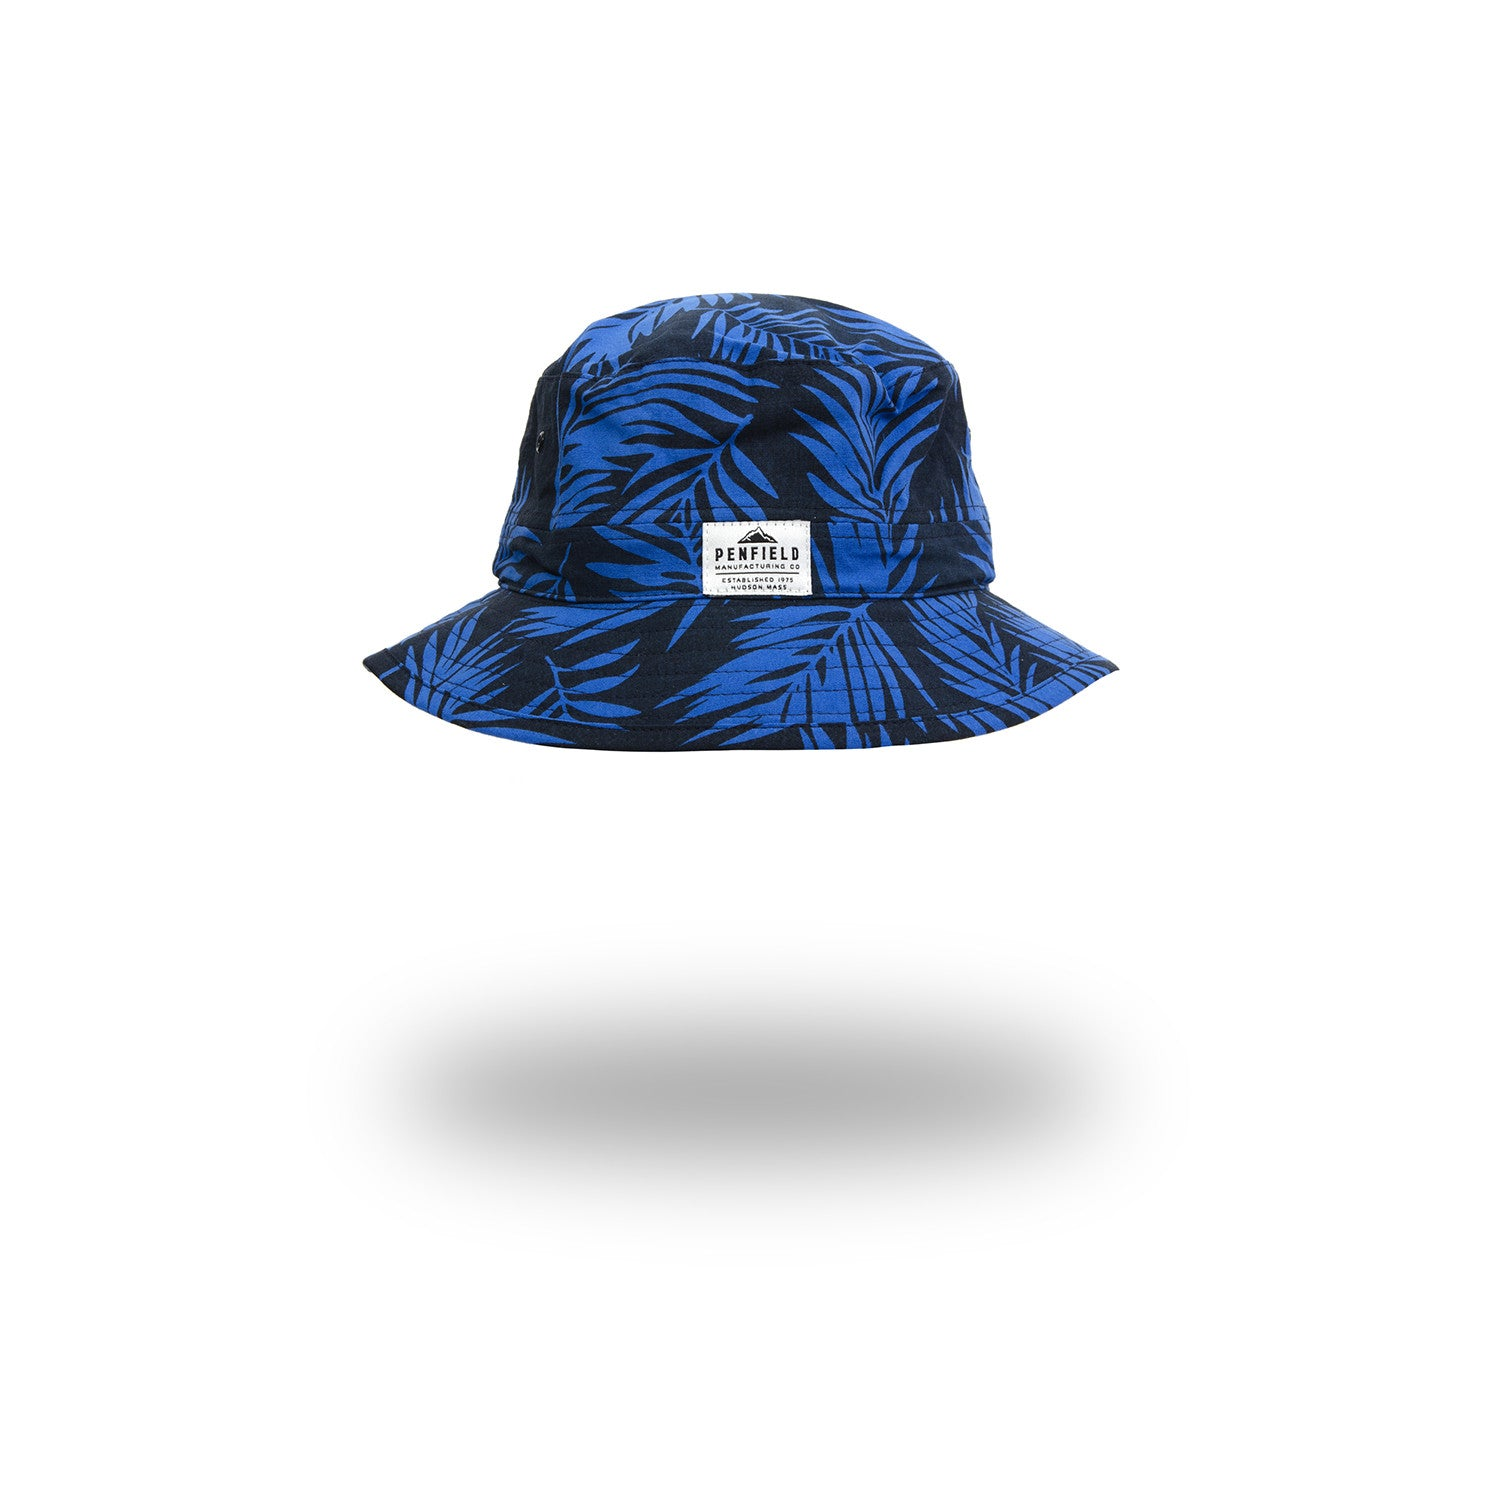 Penfield Baker Sun Hat Blue/Vine Palm - Concrete